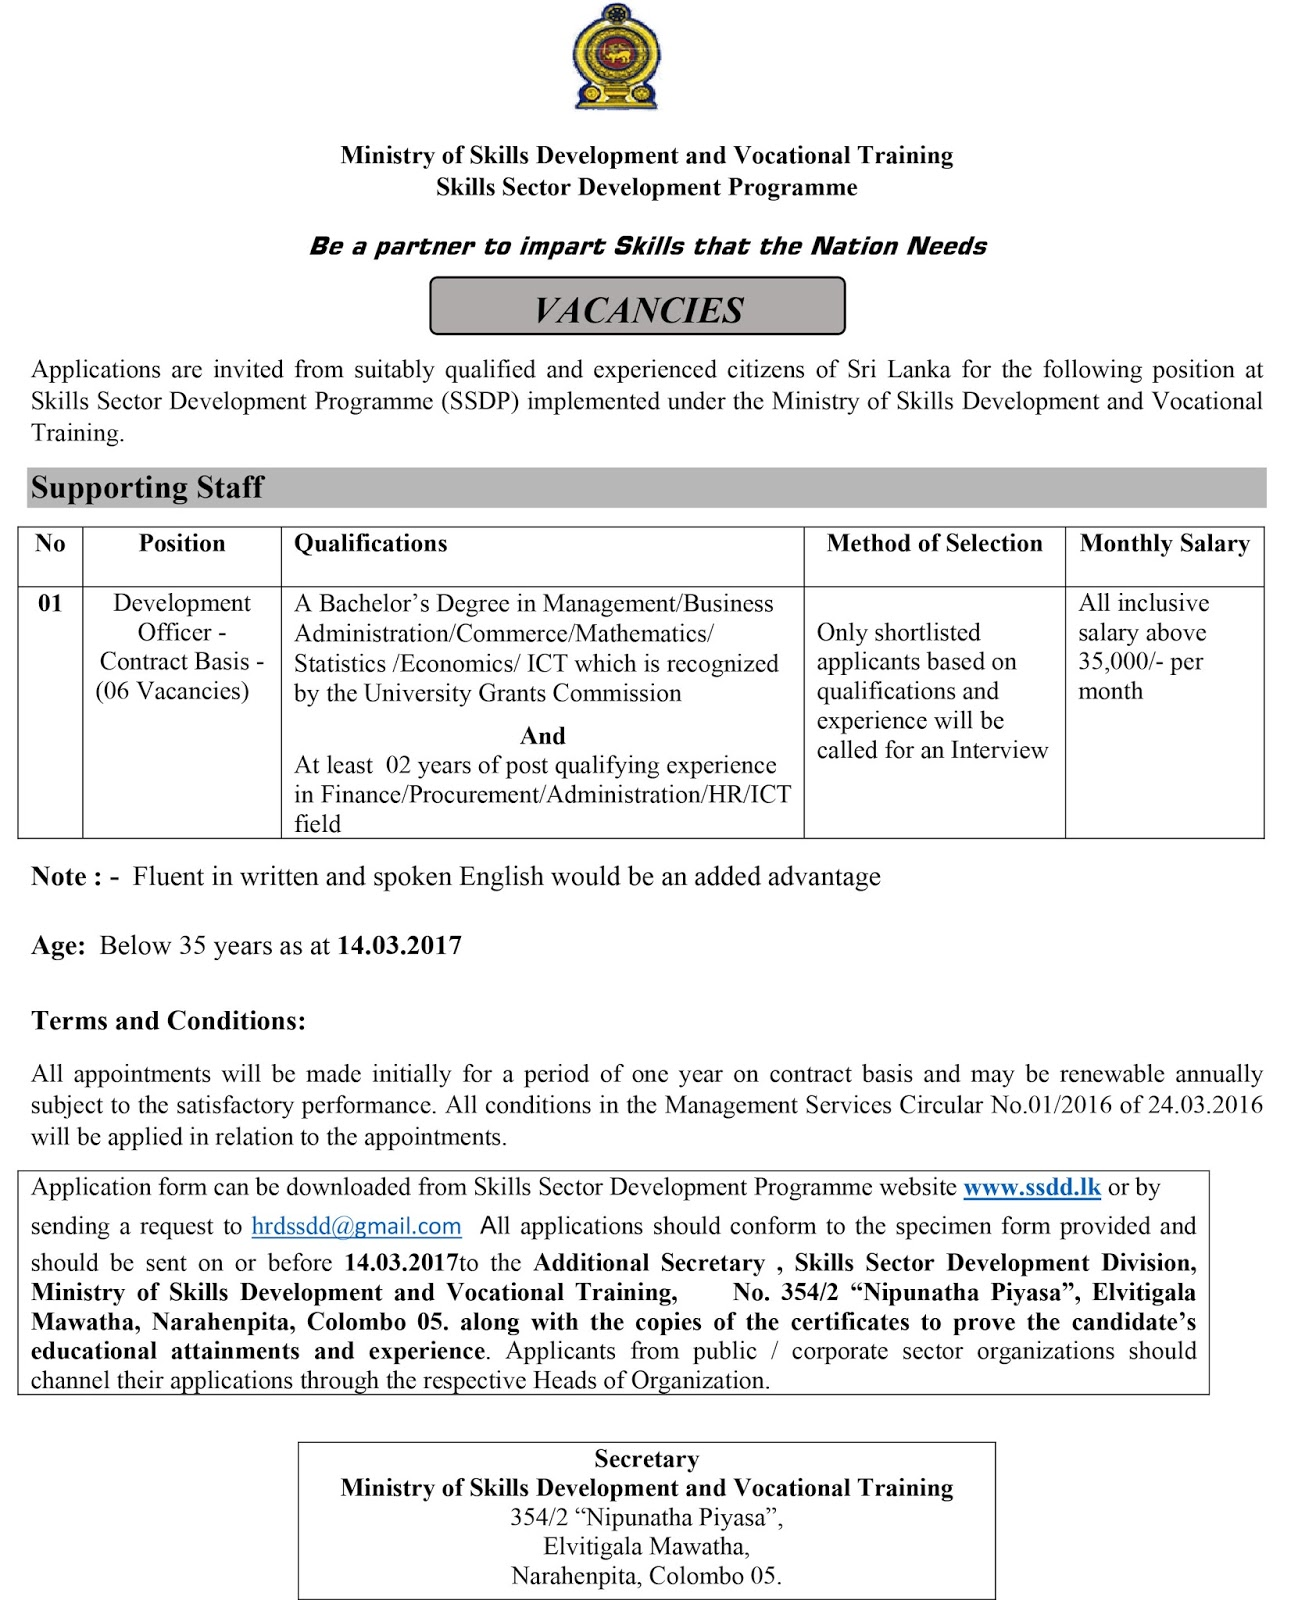 Sri Lankan Government Job Vacancies at Ministry of Skills Development & Vocational Training  for Development Officer